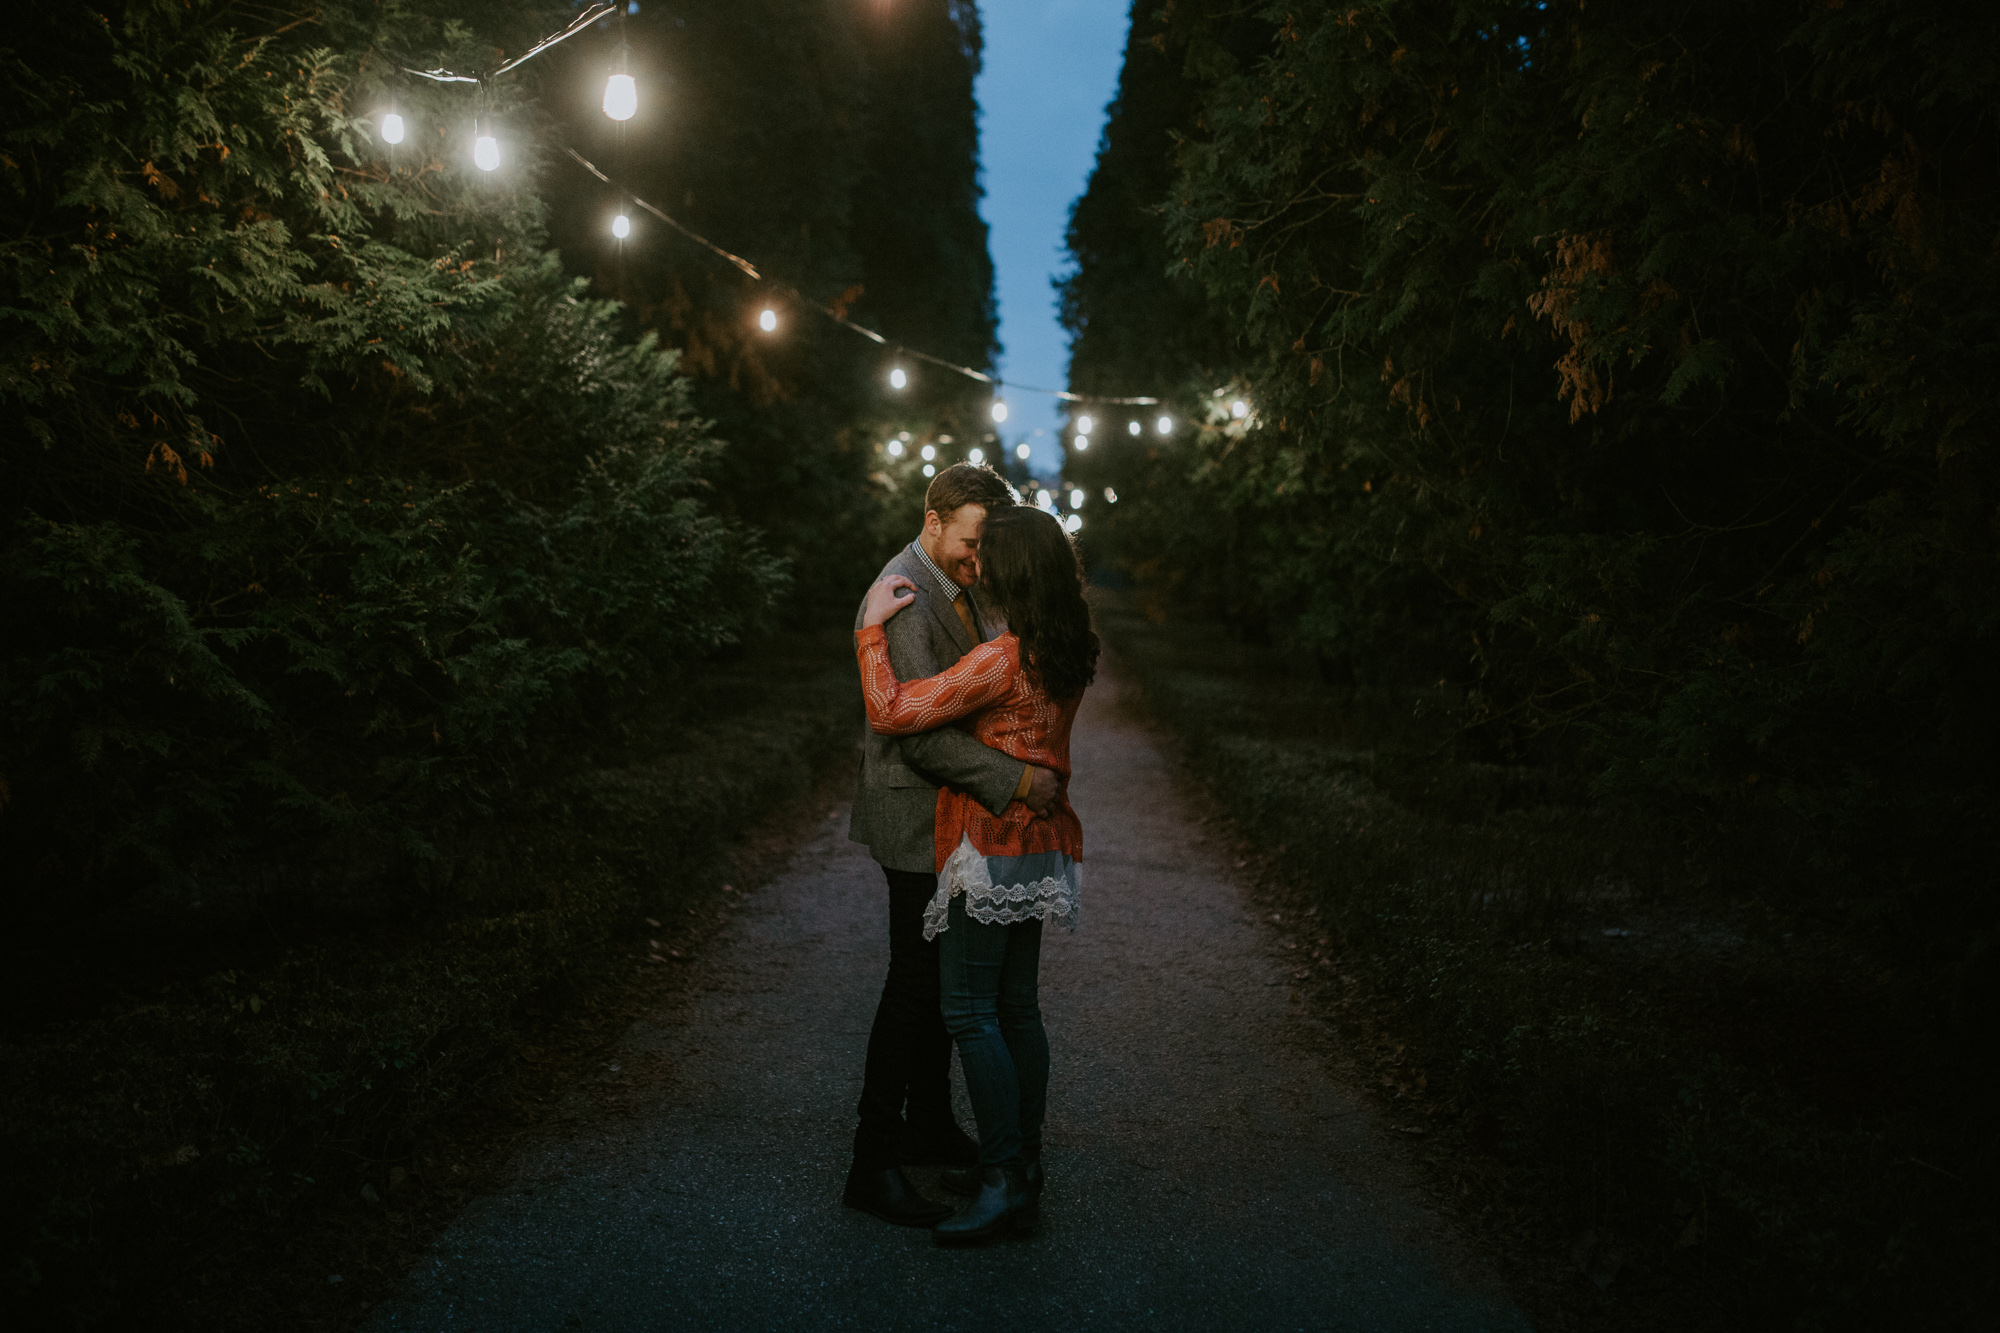 champaign_il_engagement_photography-0197.jpg